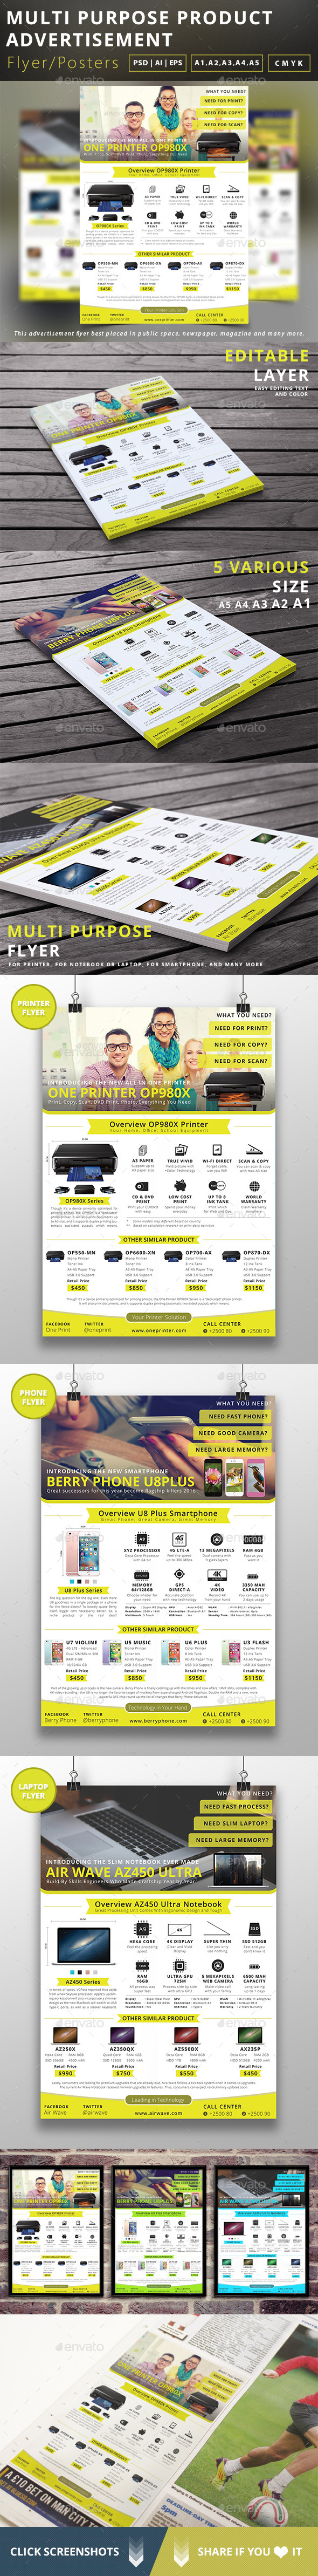 Multipurpose Product Advertisement Flyer - Commerce Flyers